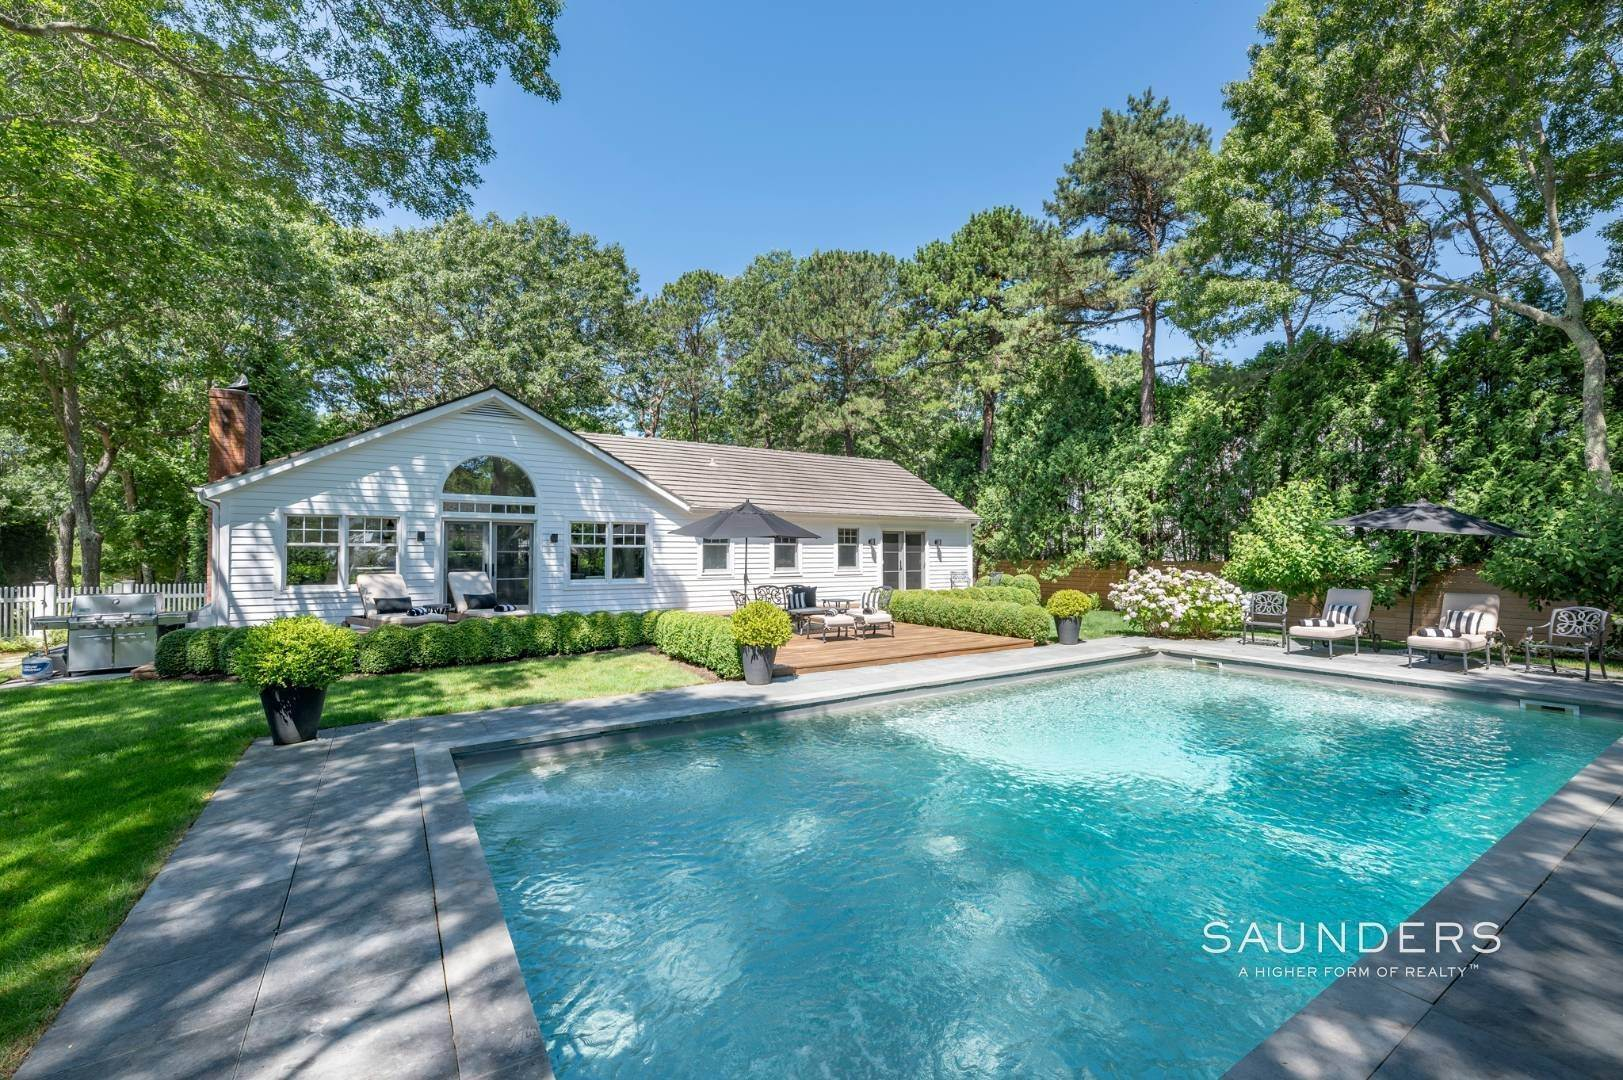 3. Single Family Homes for Sale at Modern Charm In Wainscott 32 East Gate Road, Wainscott, East Hampton Town, NY 11975